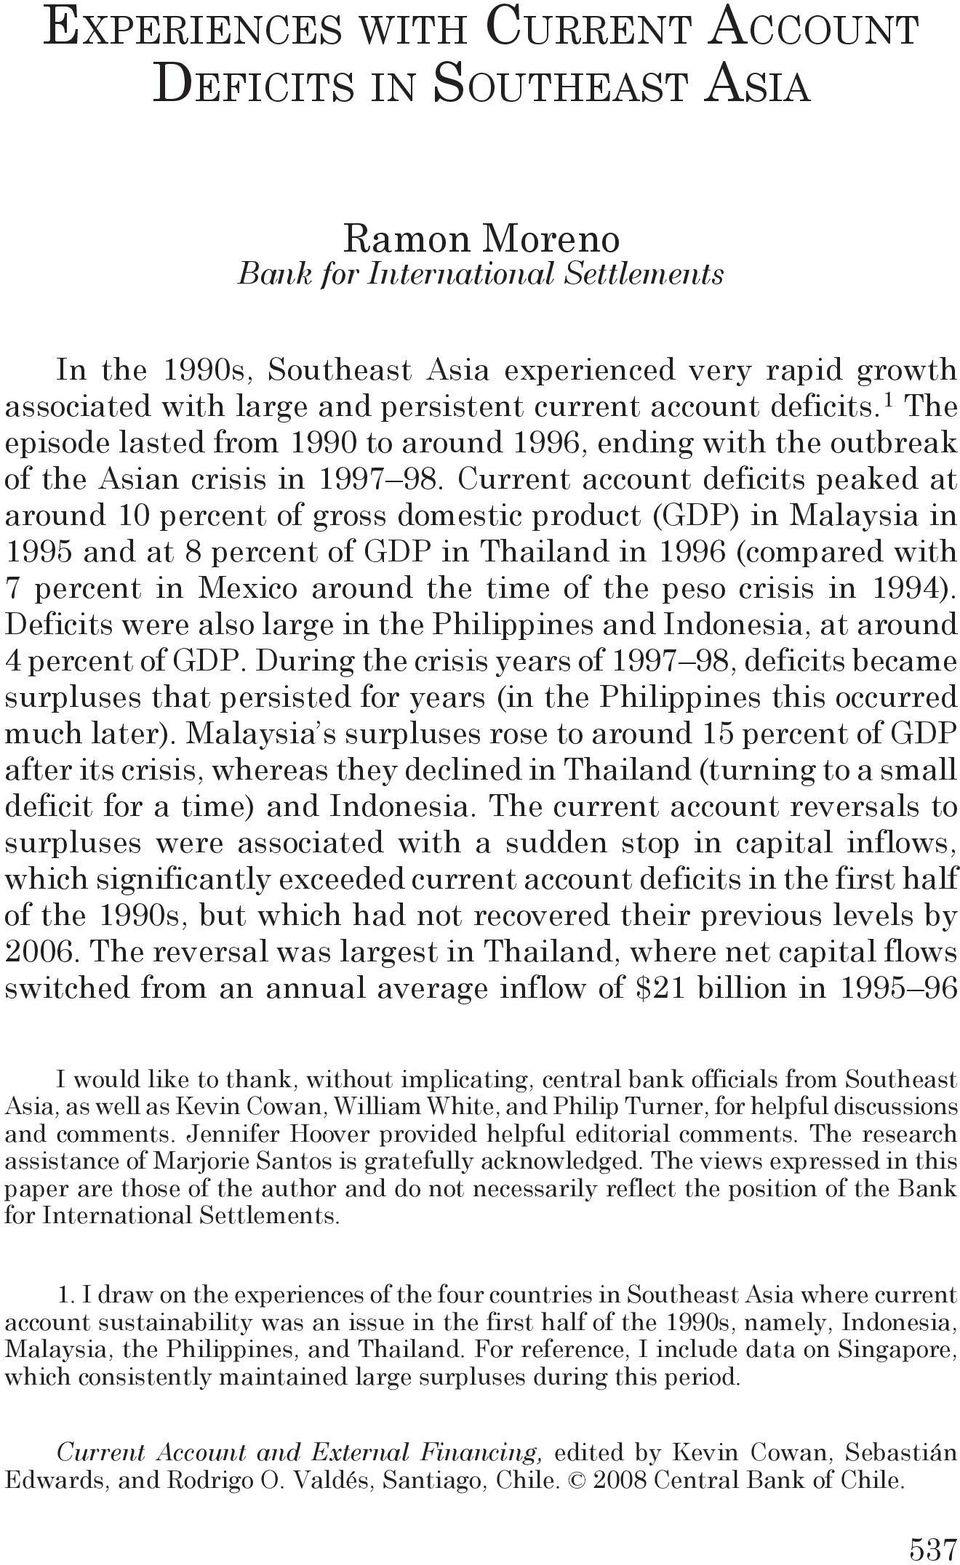 Current account deficits peaked at around 10 percent of gross domestic product (GDP) in Malaysia in 1995 and at 8 percent of GDP in Thailand in 1996 (compared with 7 percent in Mexico around the time